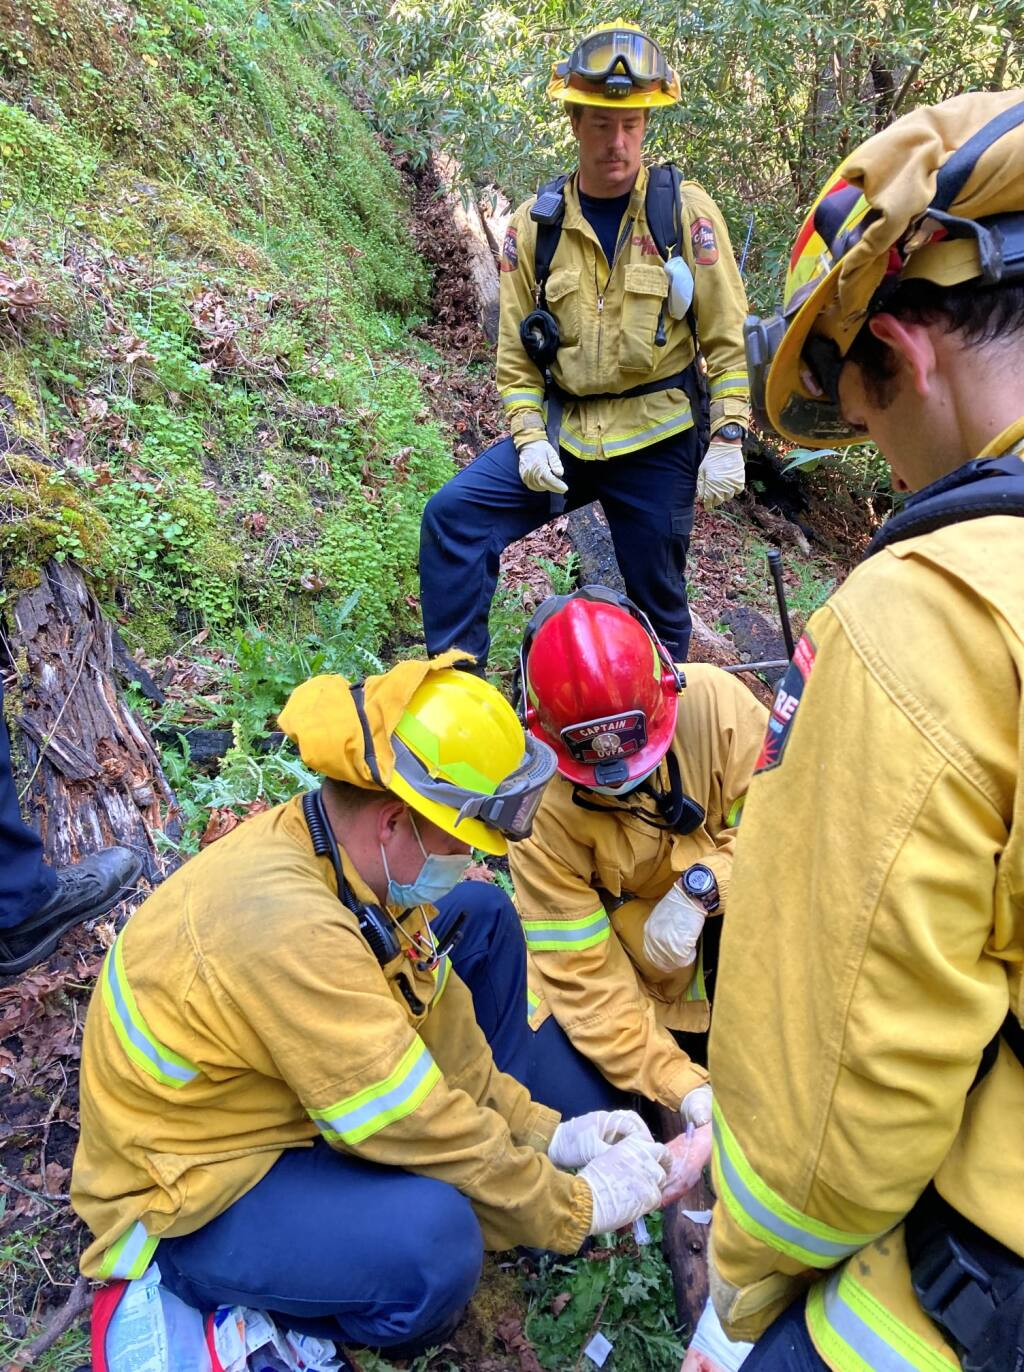 A crew with Henry 1 assisted Ukiah Valley Fire Authority and Cal Fire in rescuing a woman from the Montgomery Woods State Natural Reserve. (Sonoma County Sheriff's Office / Facebook)